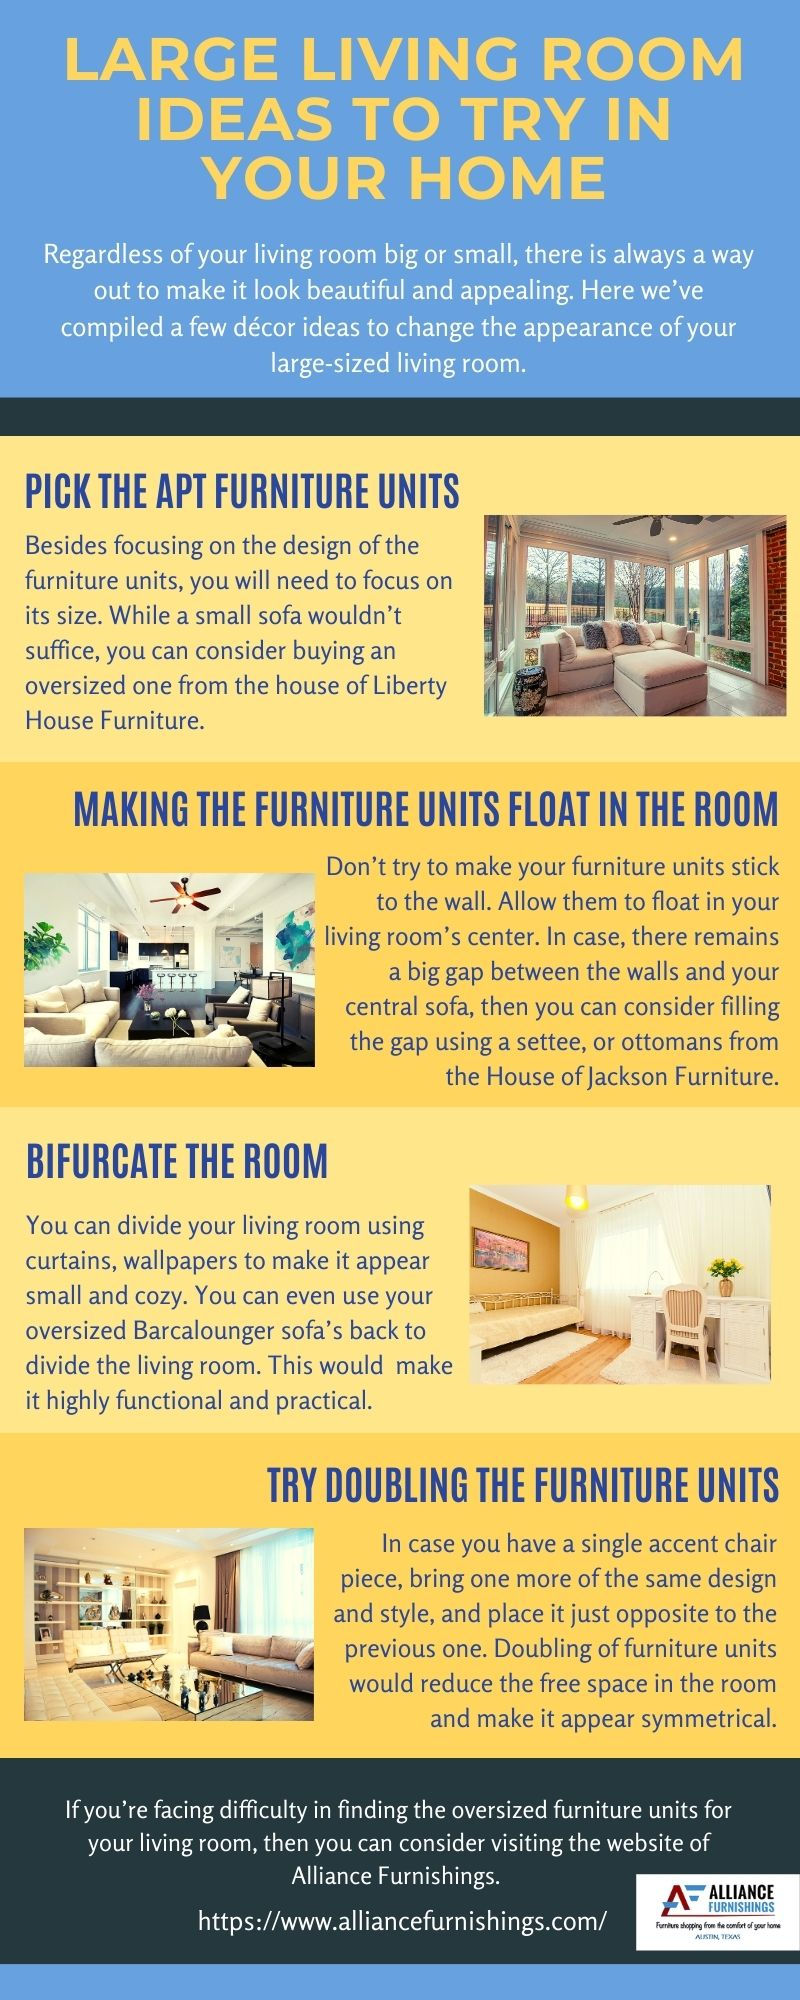 Large Living Room Ideas To Try In Your Home